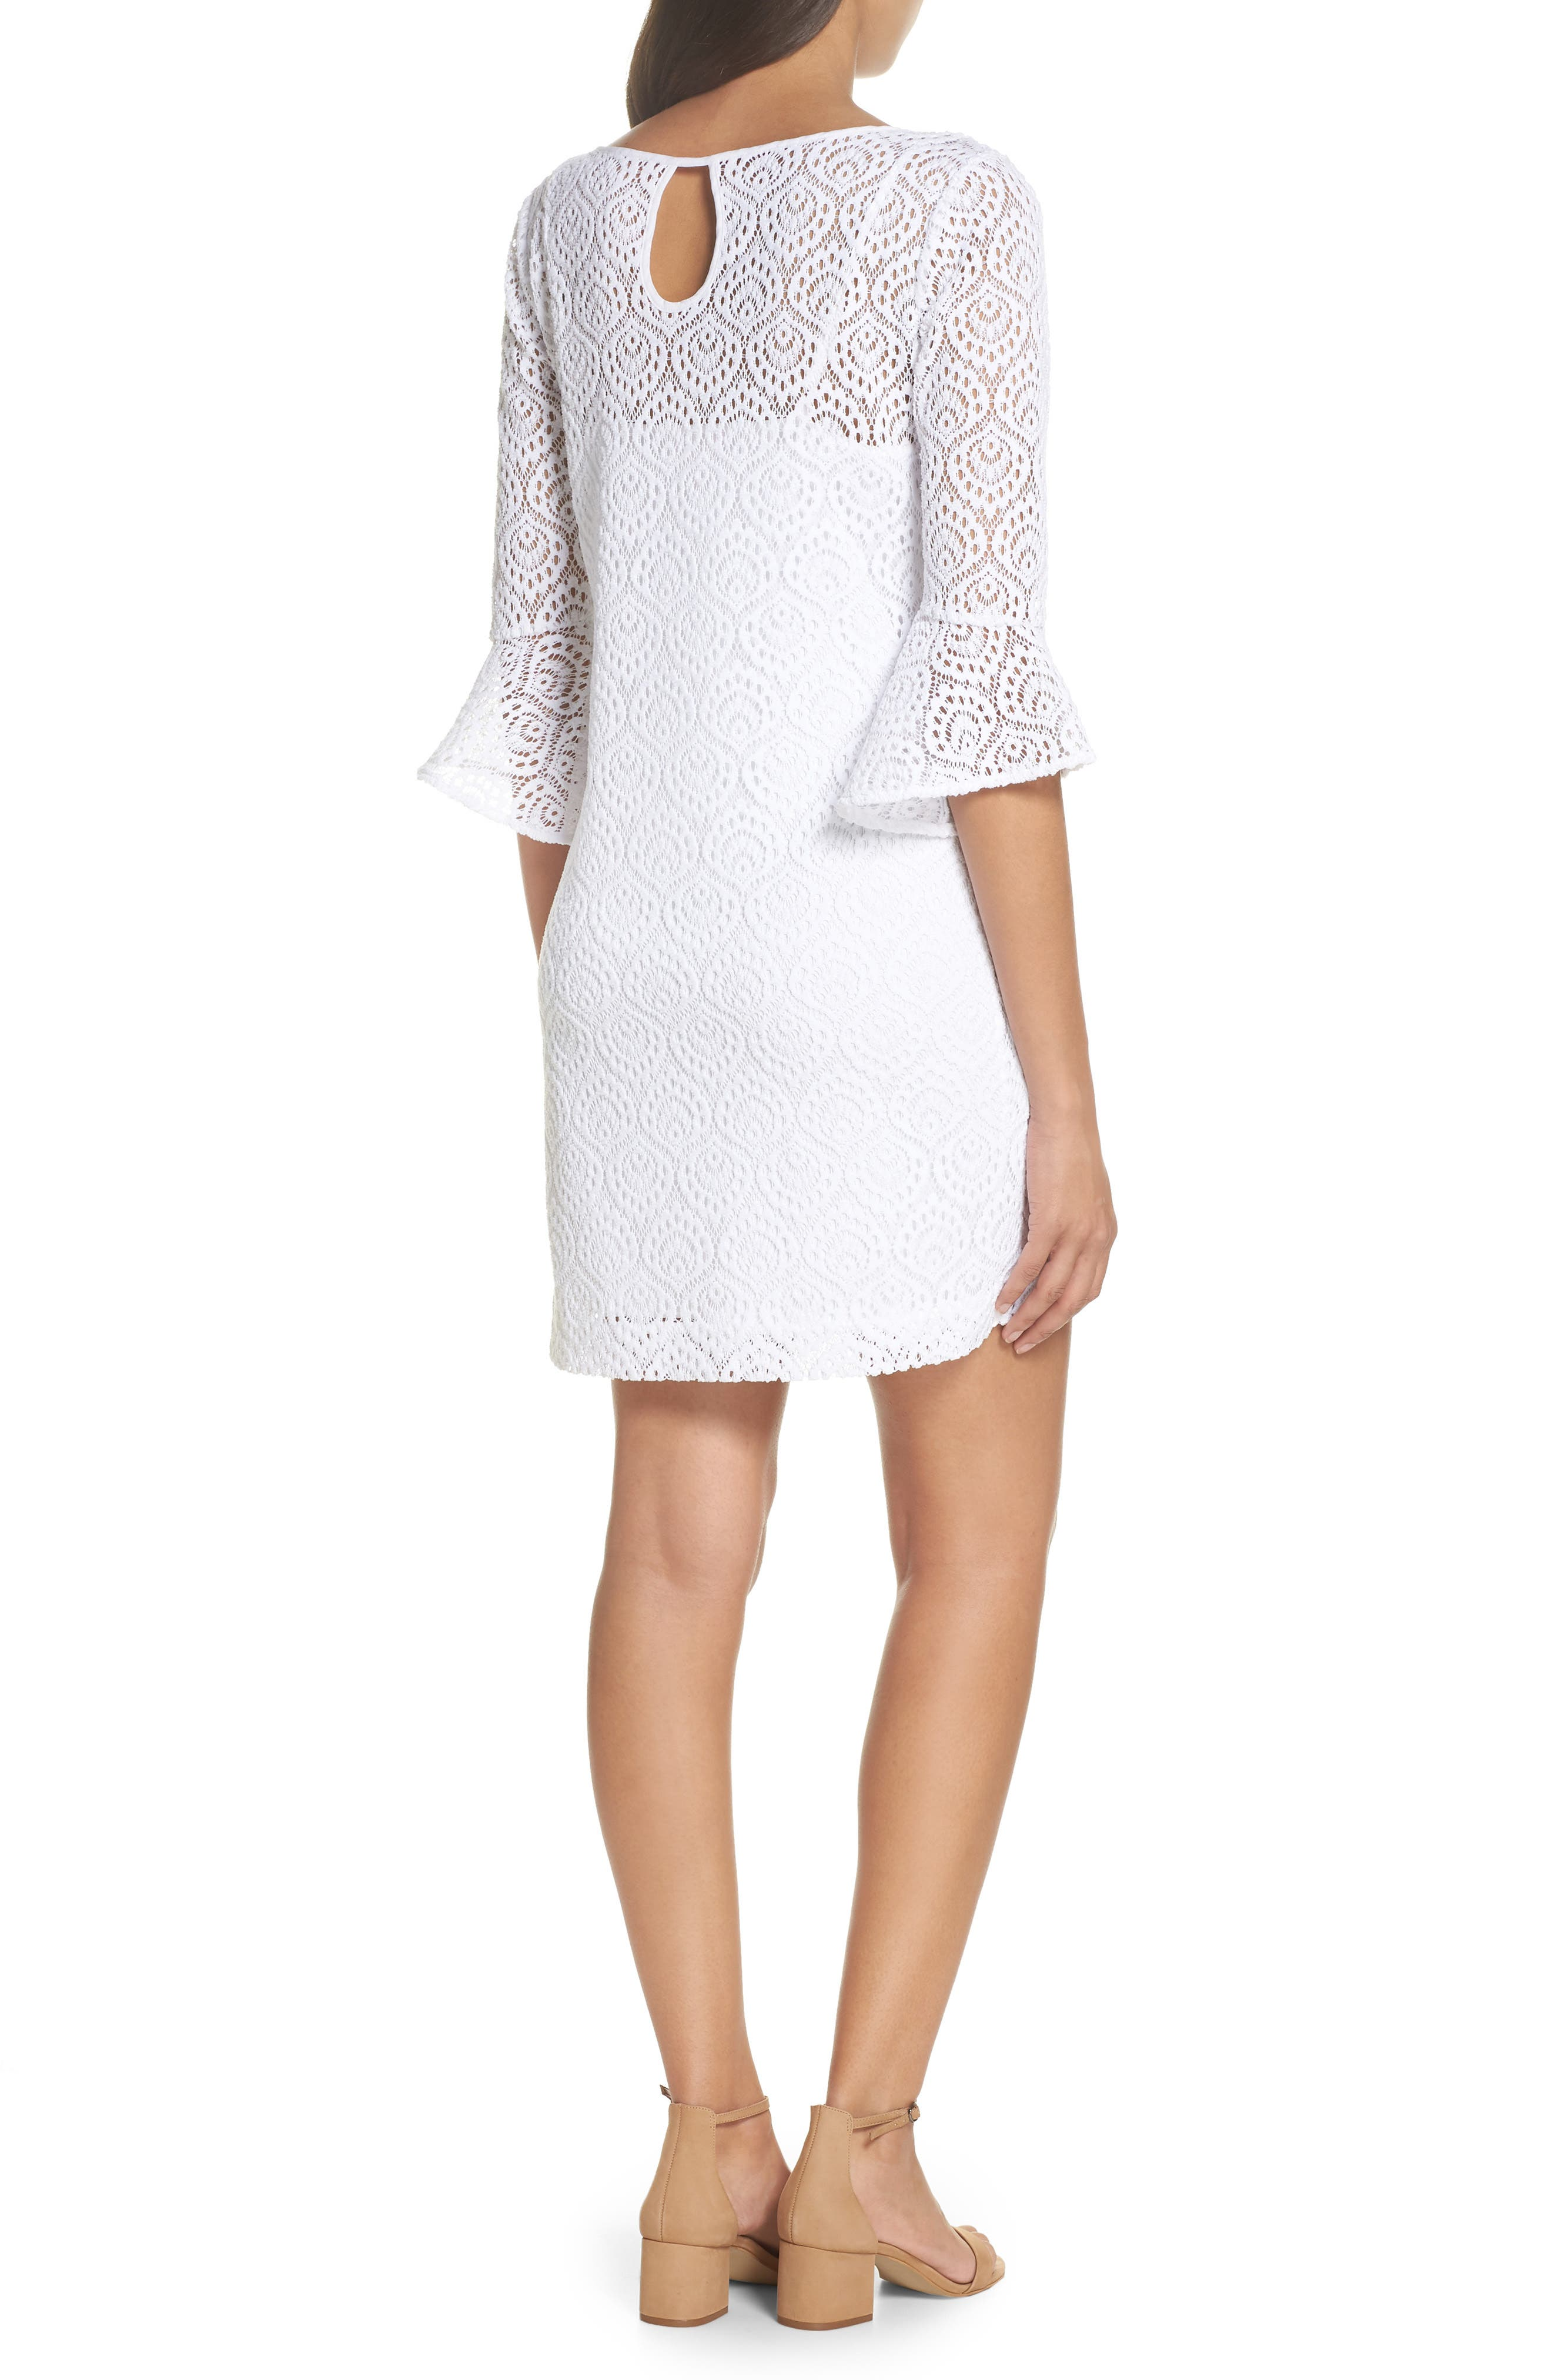 Fontaine Lace Minidress,                             Alternate thumbnail 2, color,                             Resort White Gypsea Lace